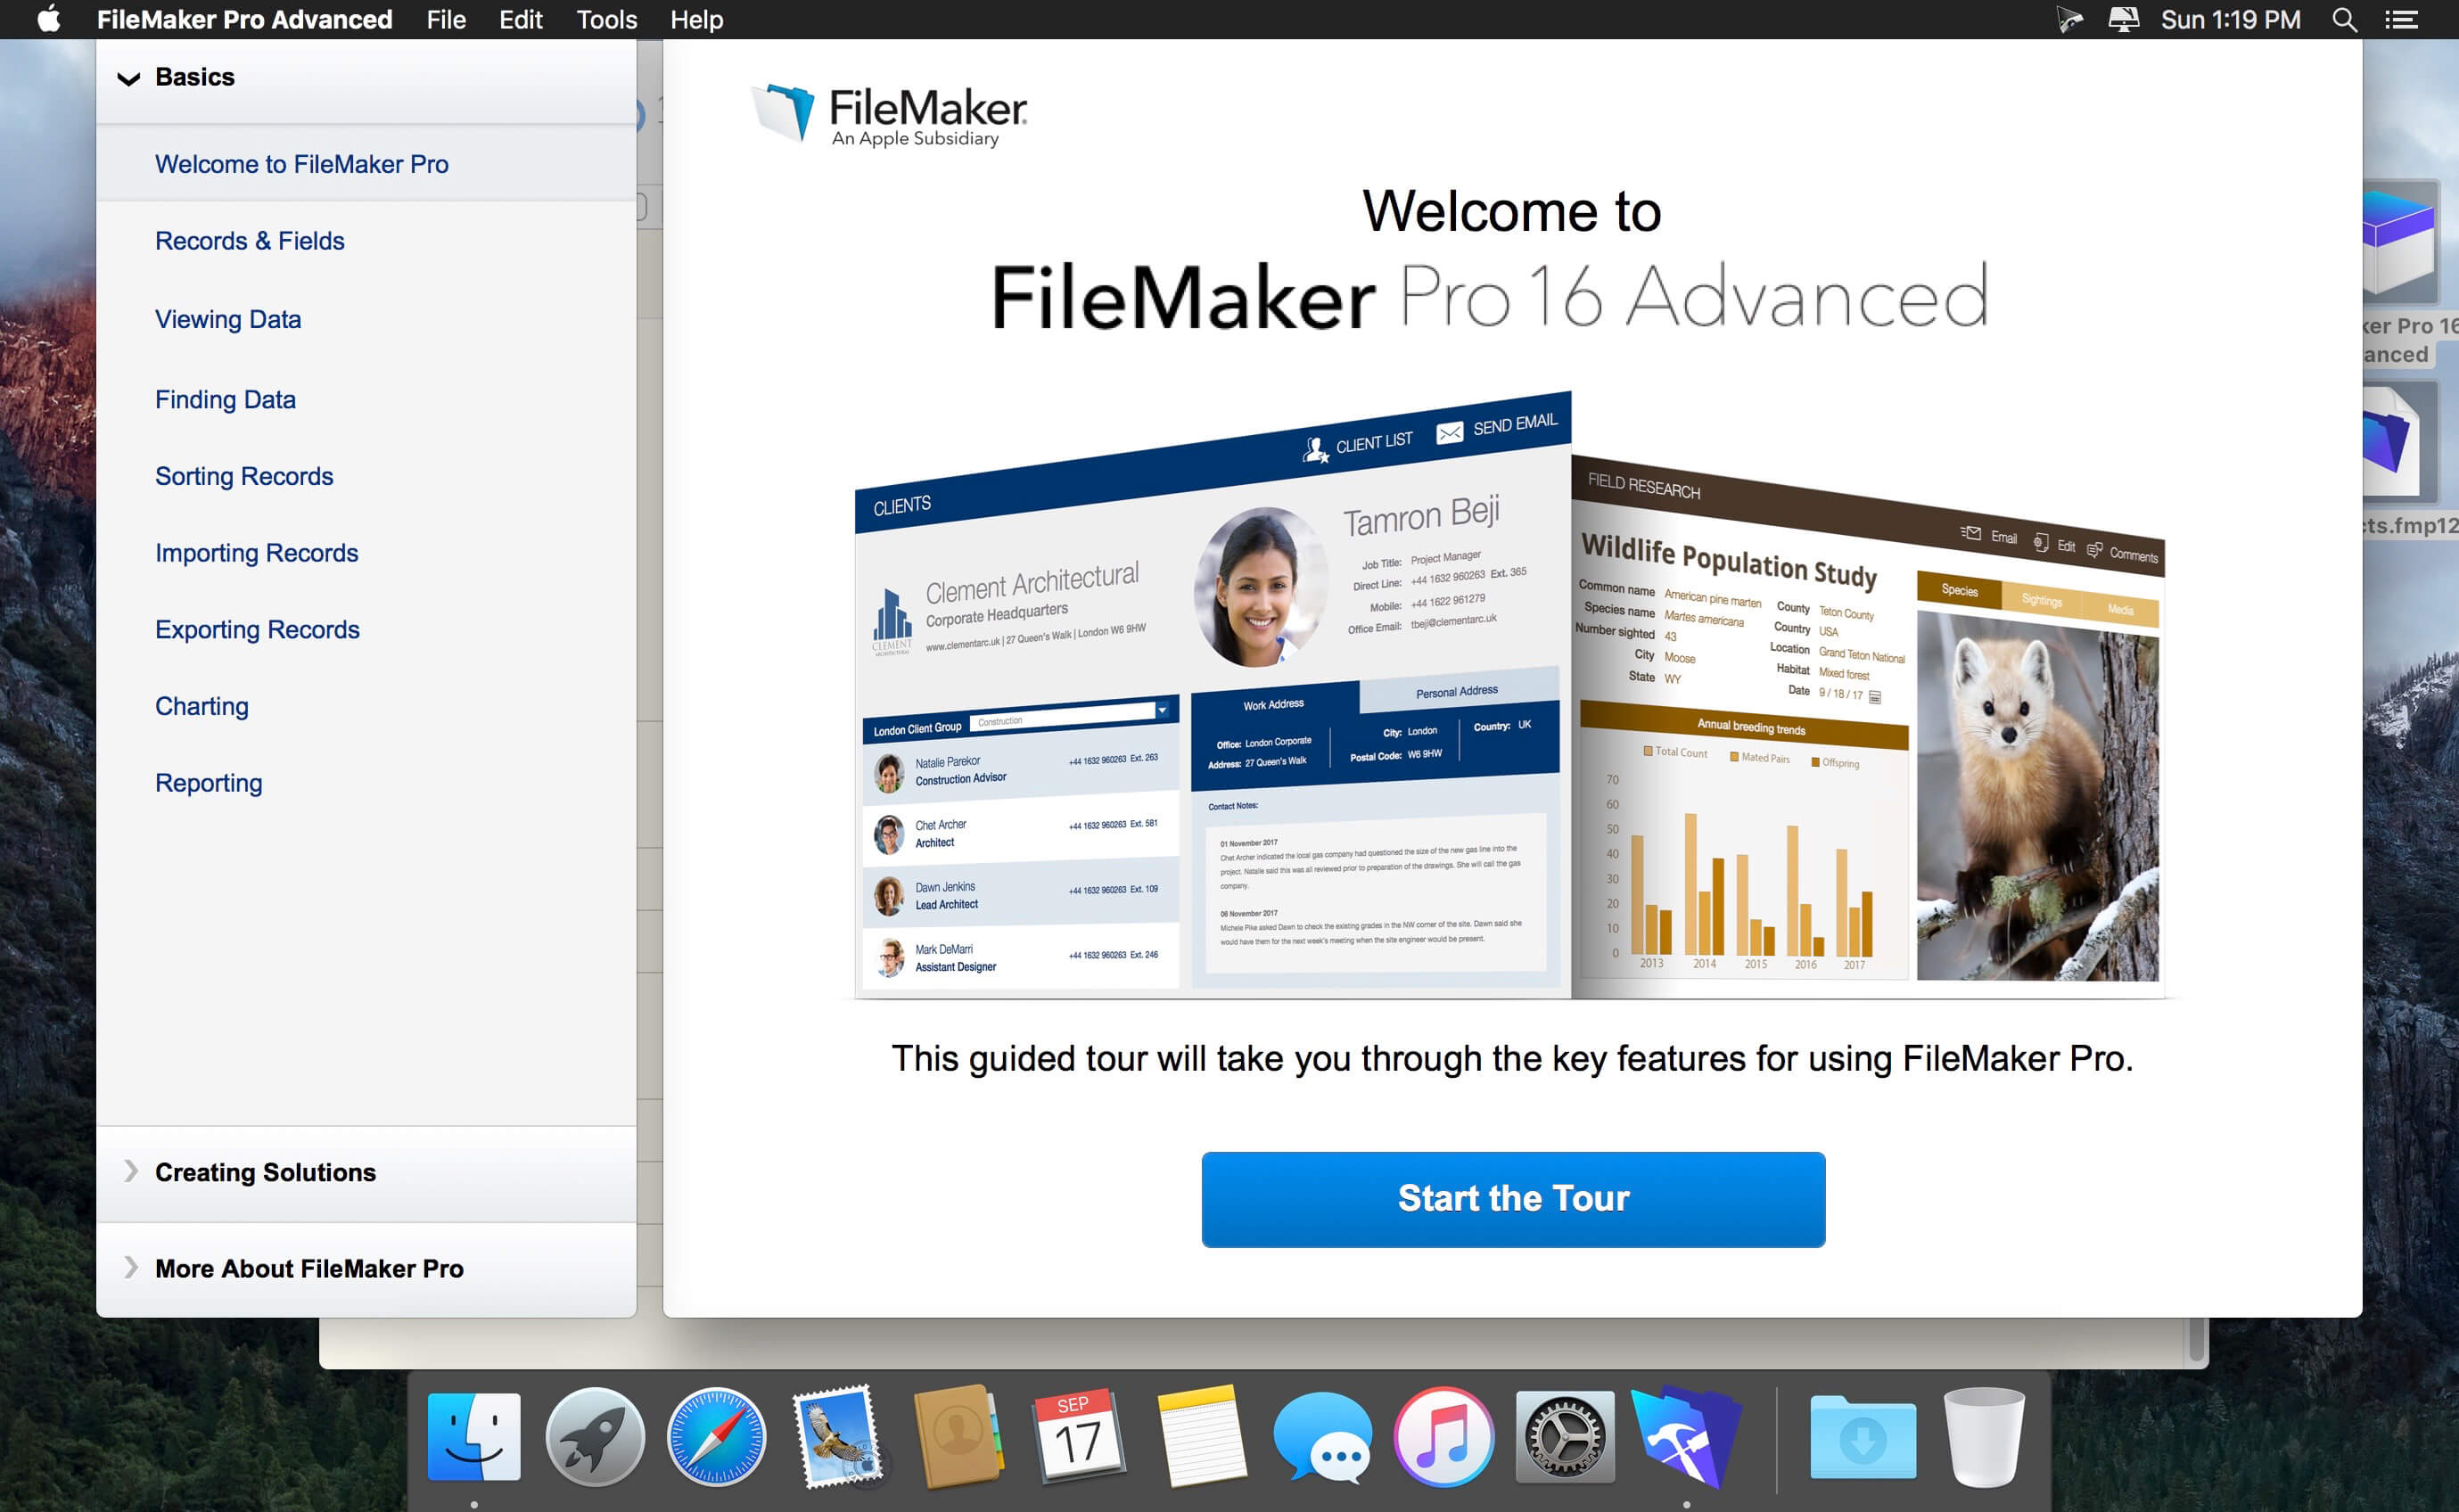 filemaker pro advanced 16 mac